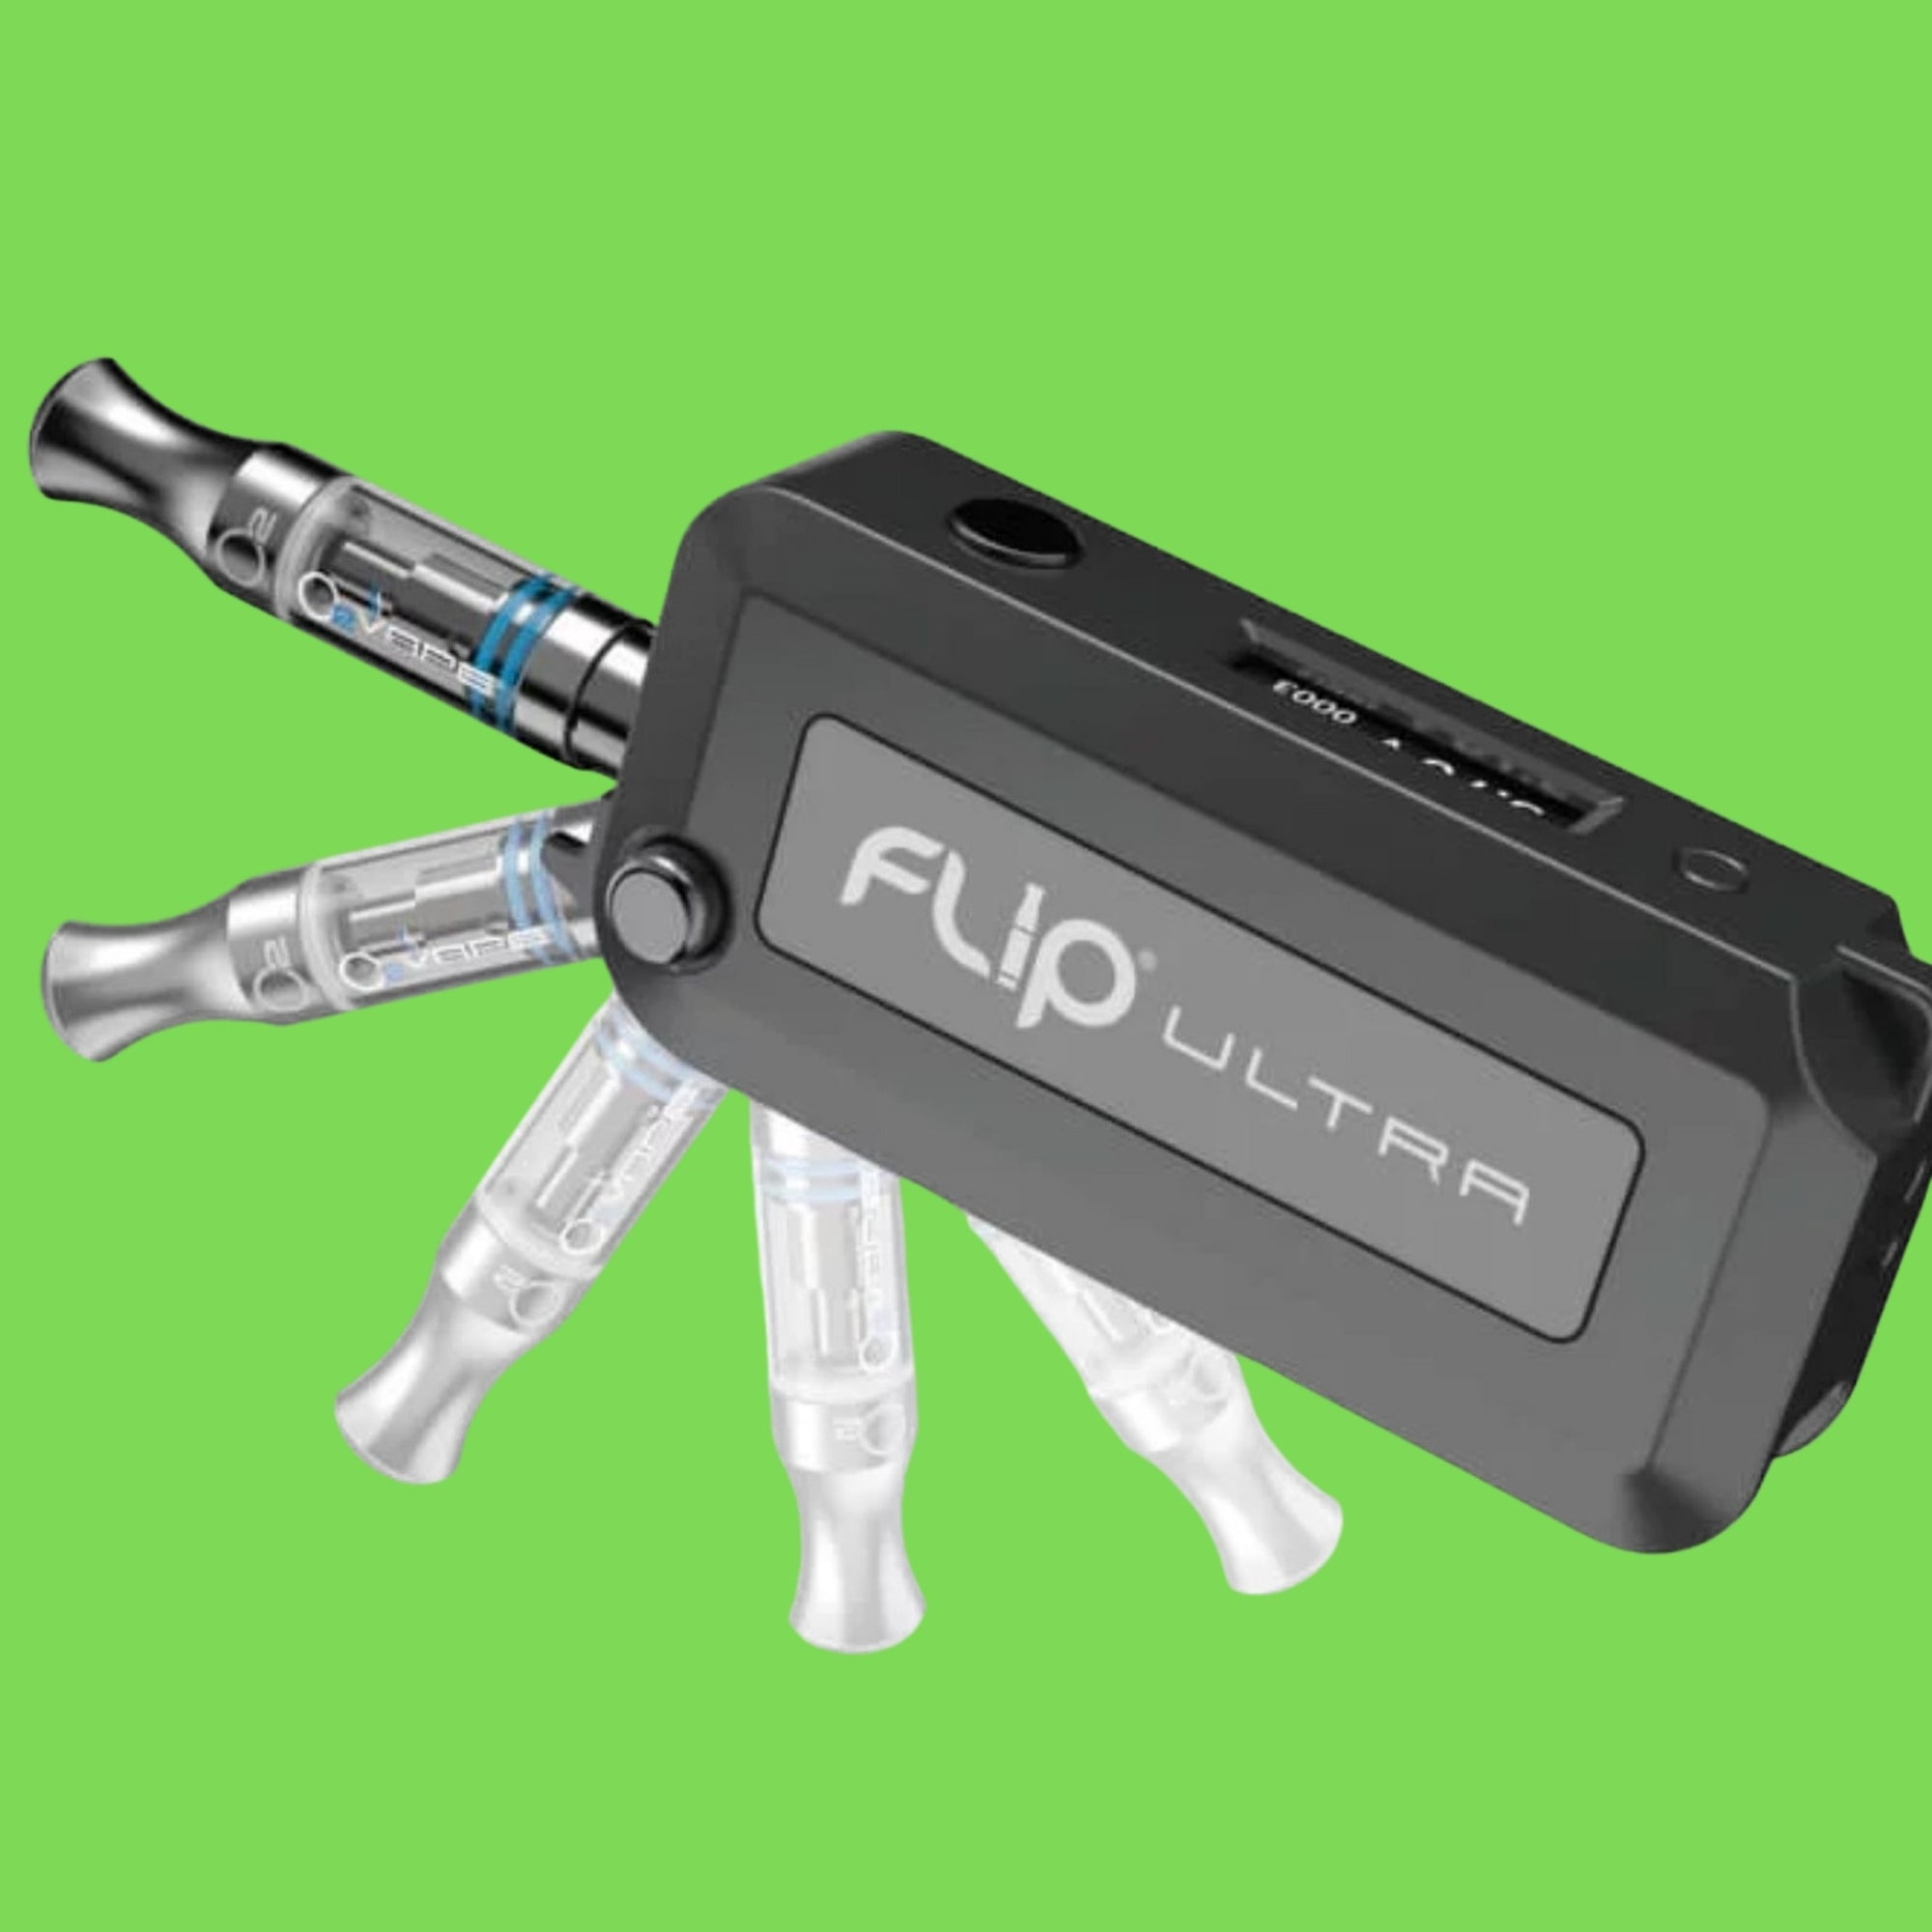 O2 Flip Key Ultra Vape with Green Background